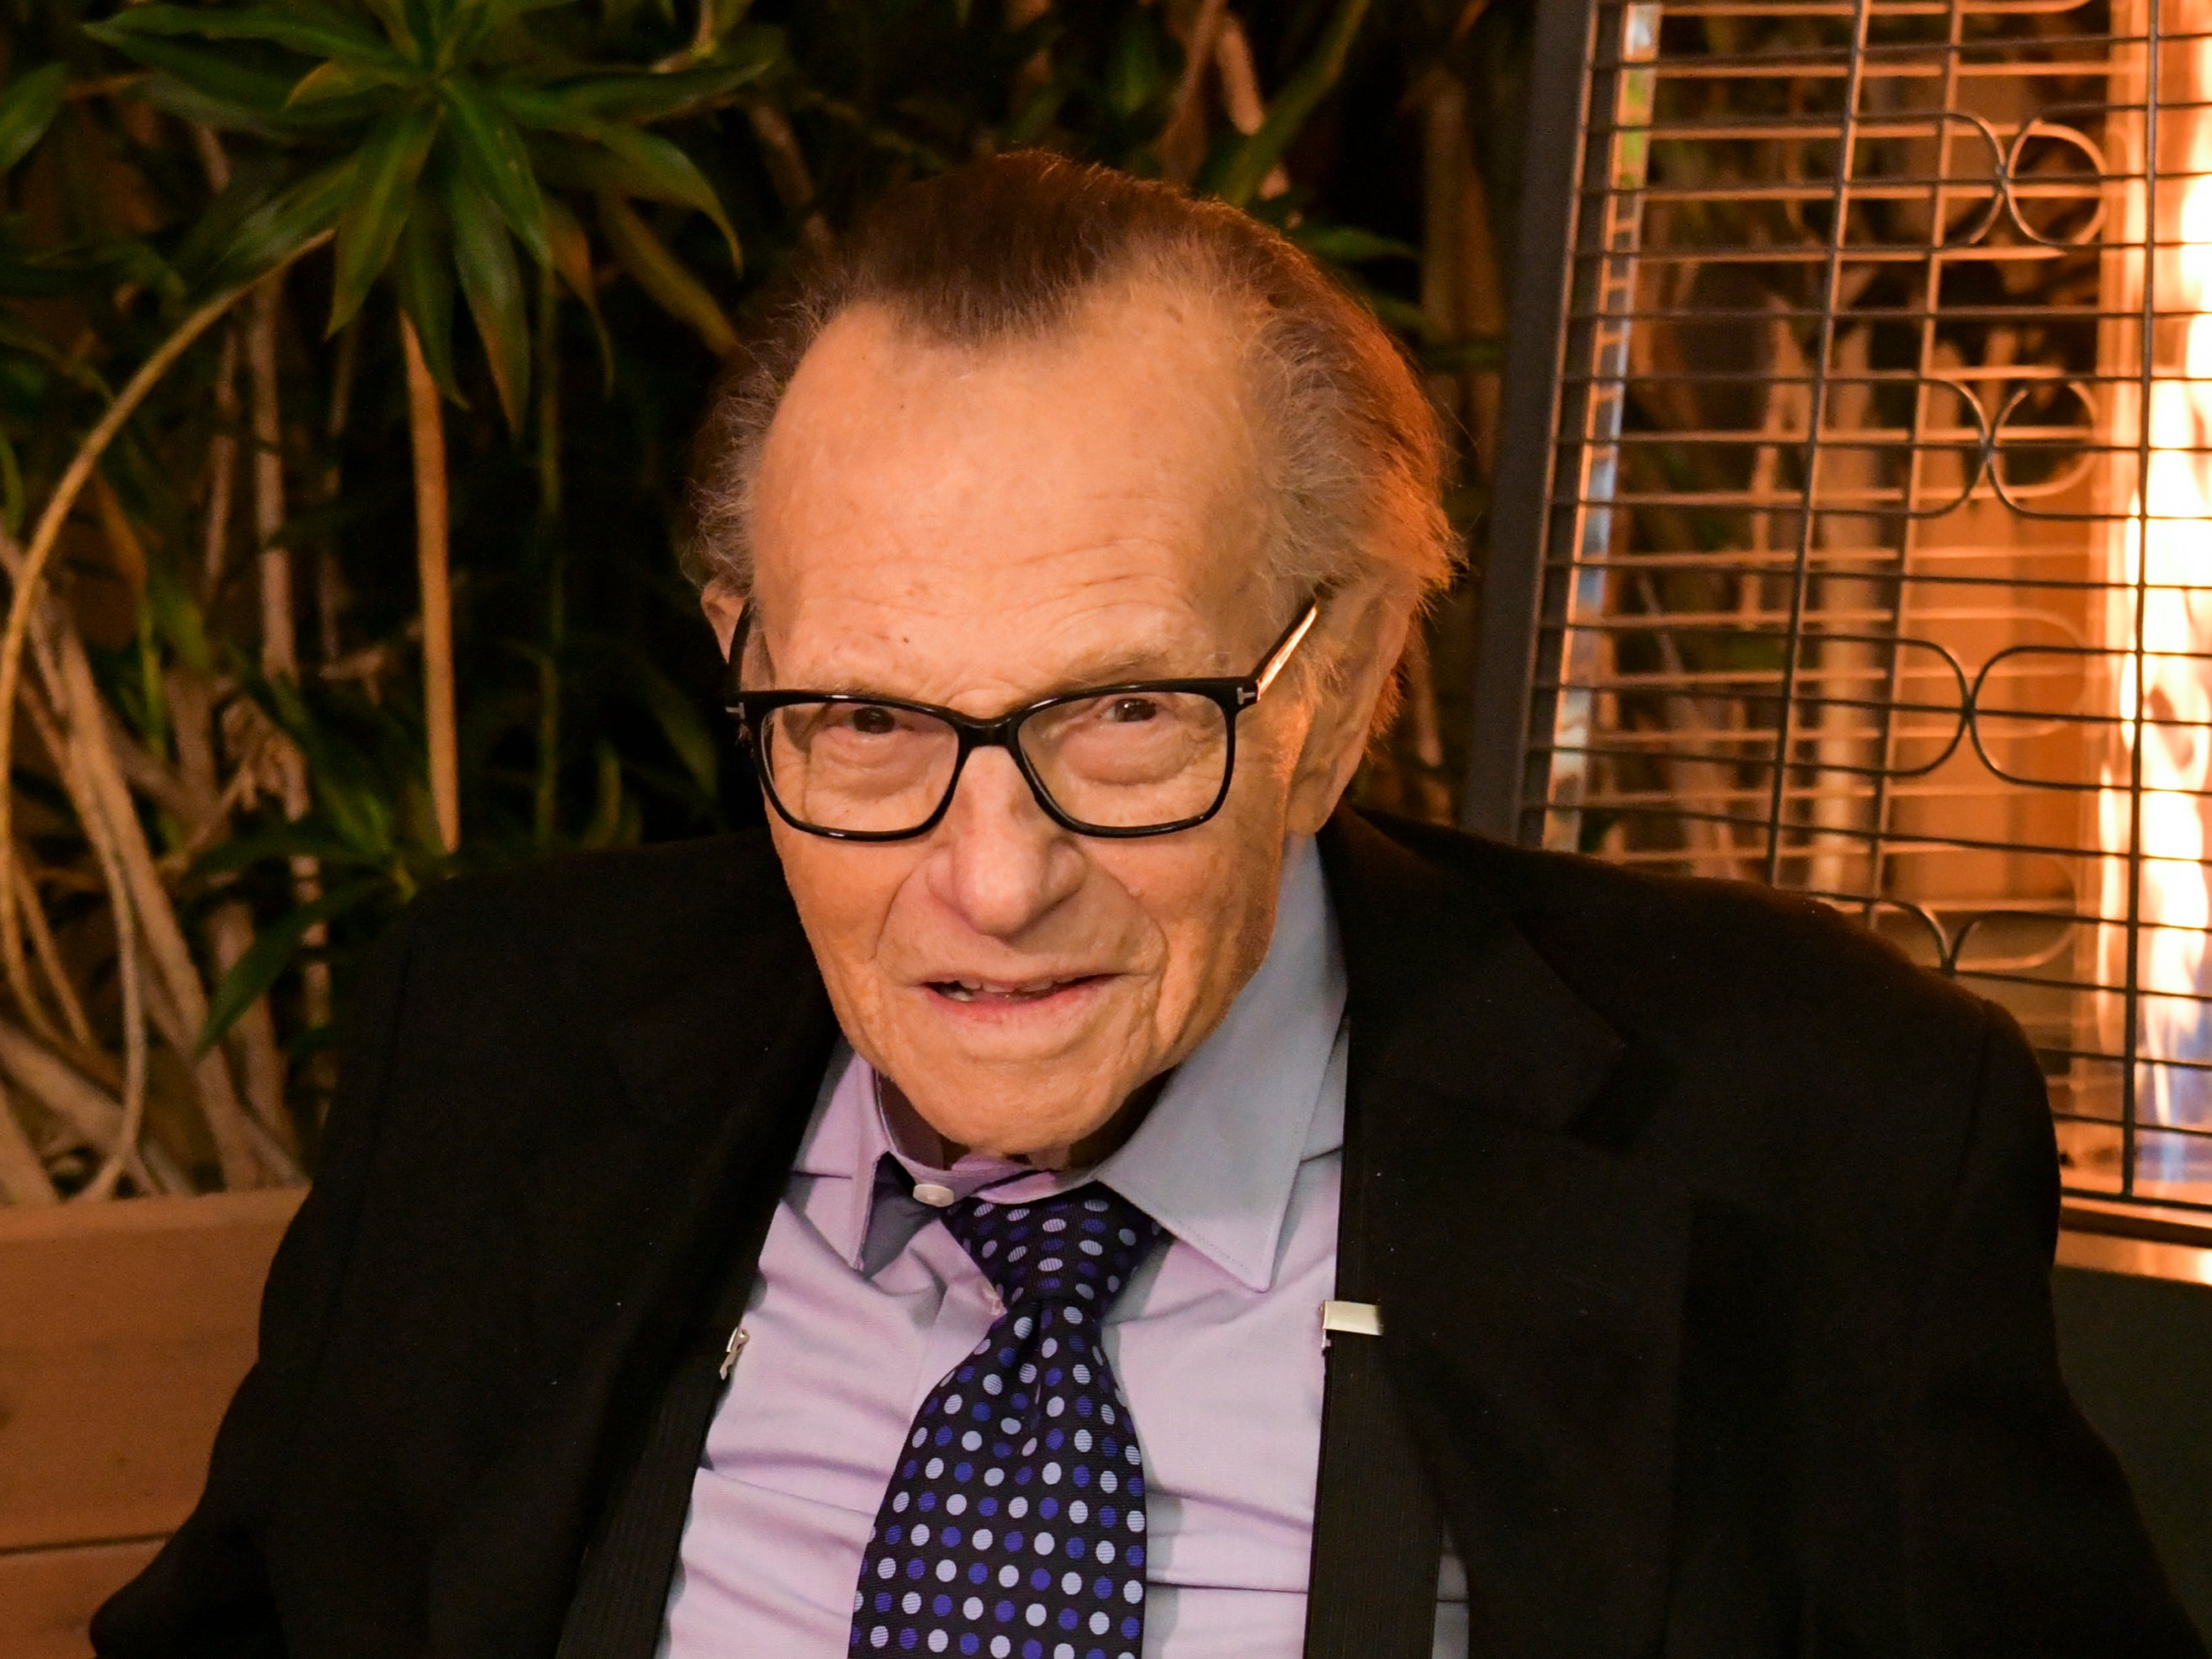 Larry King death: Tributes to 'television legend' after death aged 87